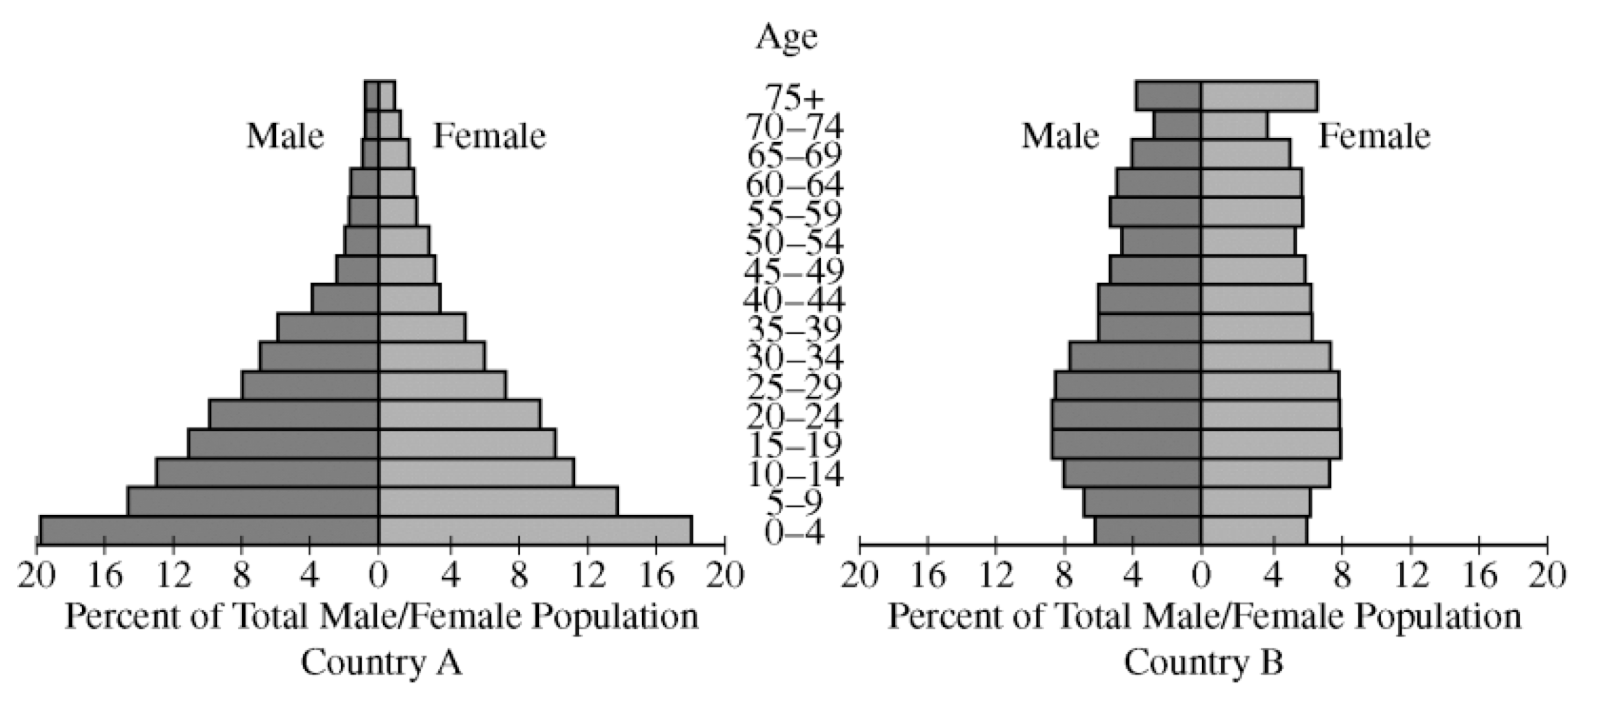 you are given two population pyramids which represent two countries at different stages of the